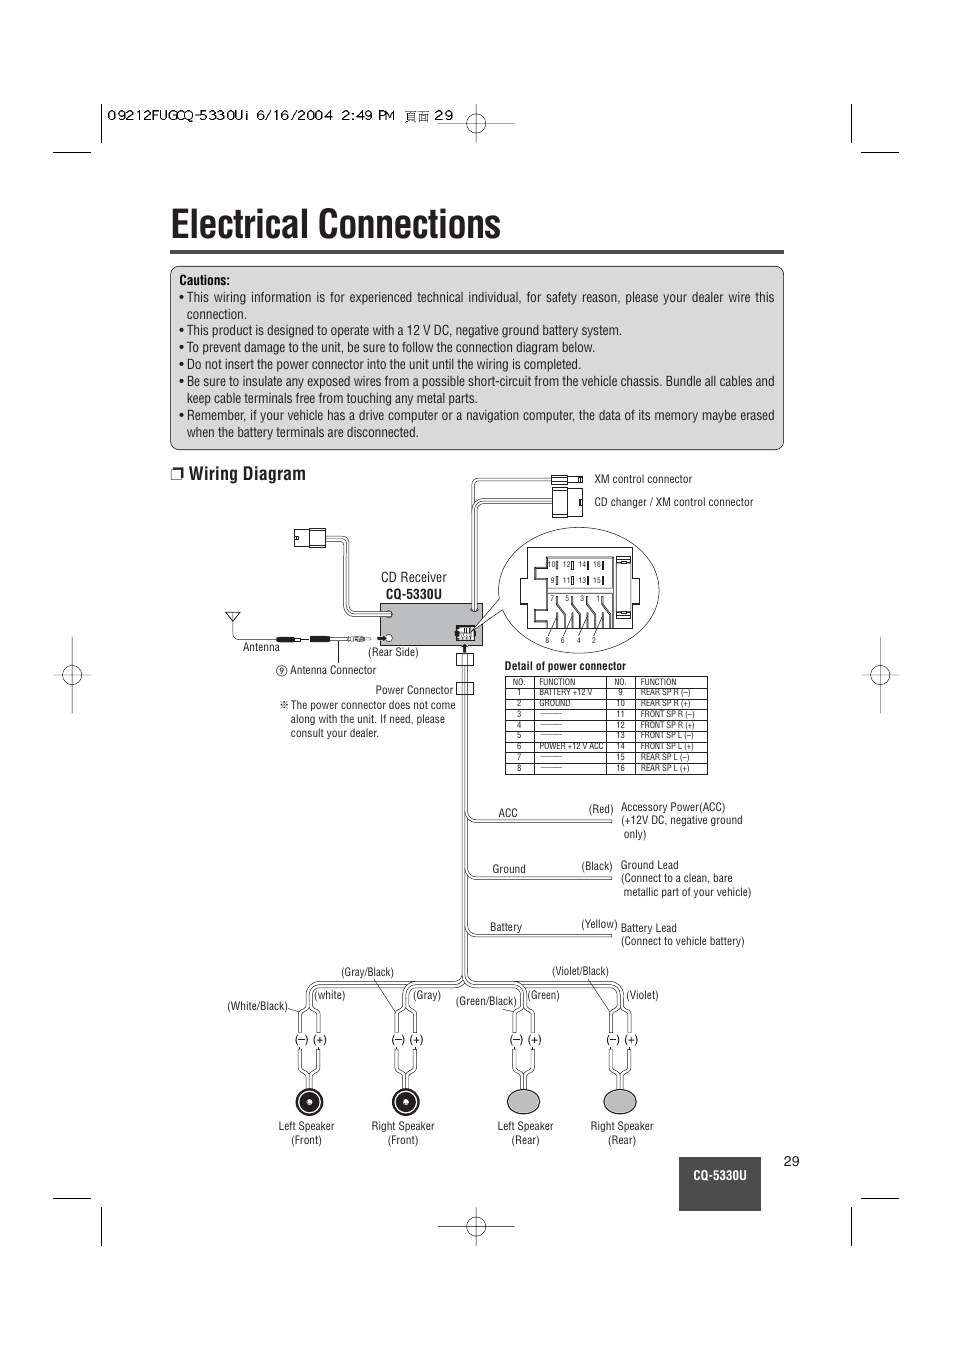 medium resolution of electrical connections wiring diagram panasonic cq 5330u user manual page 29